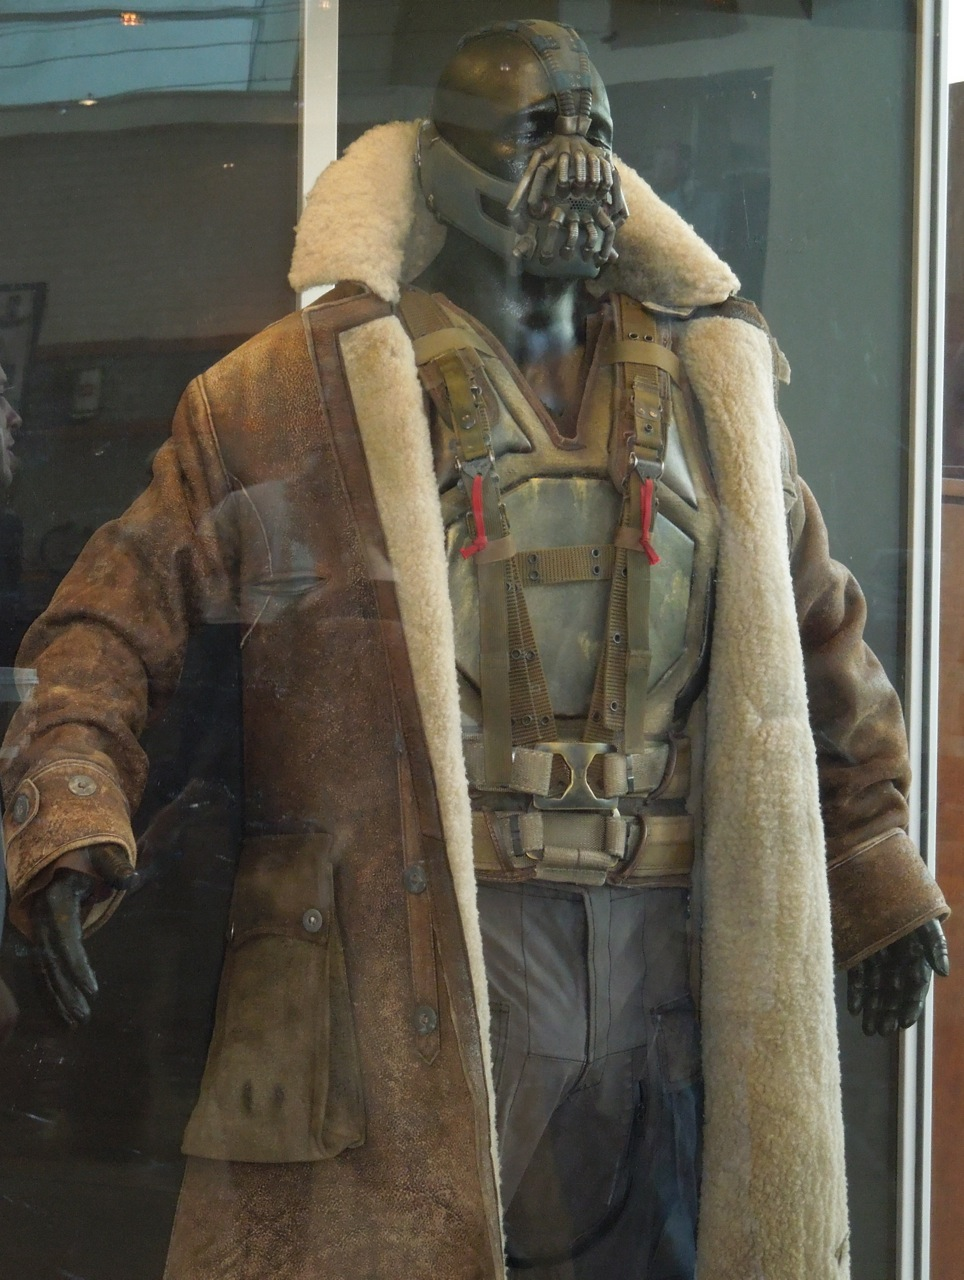 Dark Knight Rises Bane costume & Hollywood Movie Costumes and Props: Tom Hardyu0027s Bane costume from ...